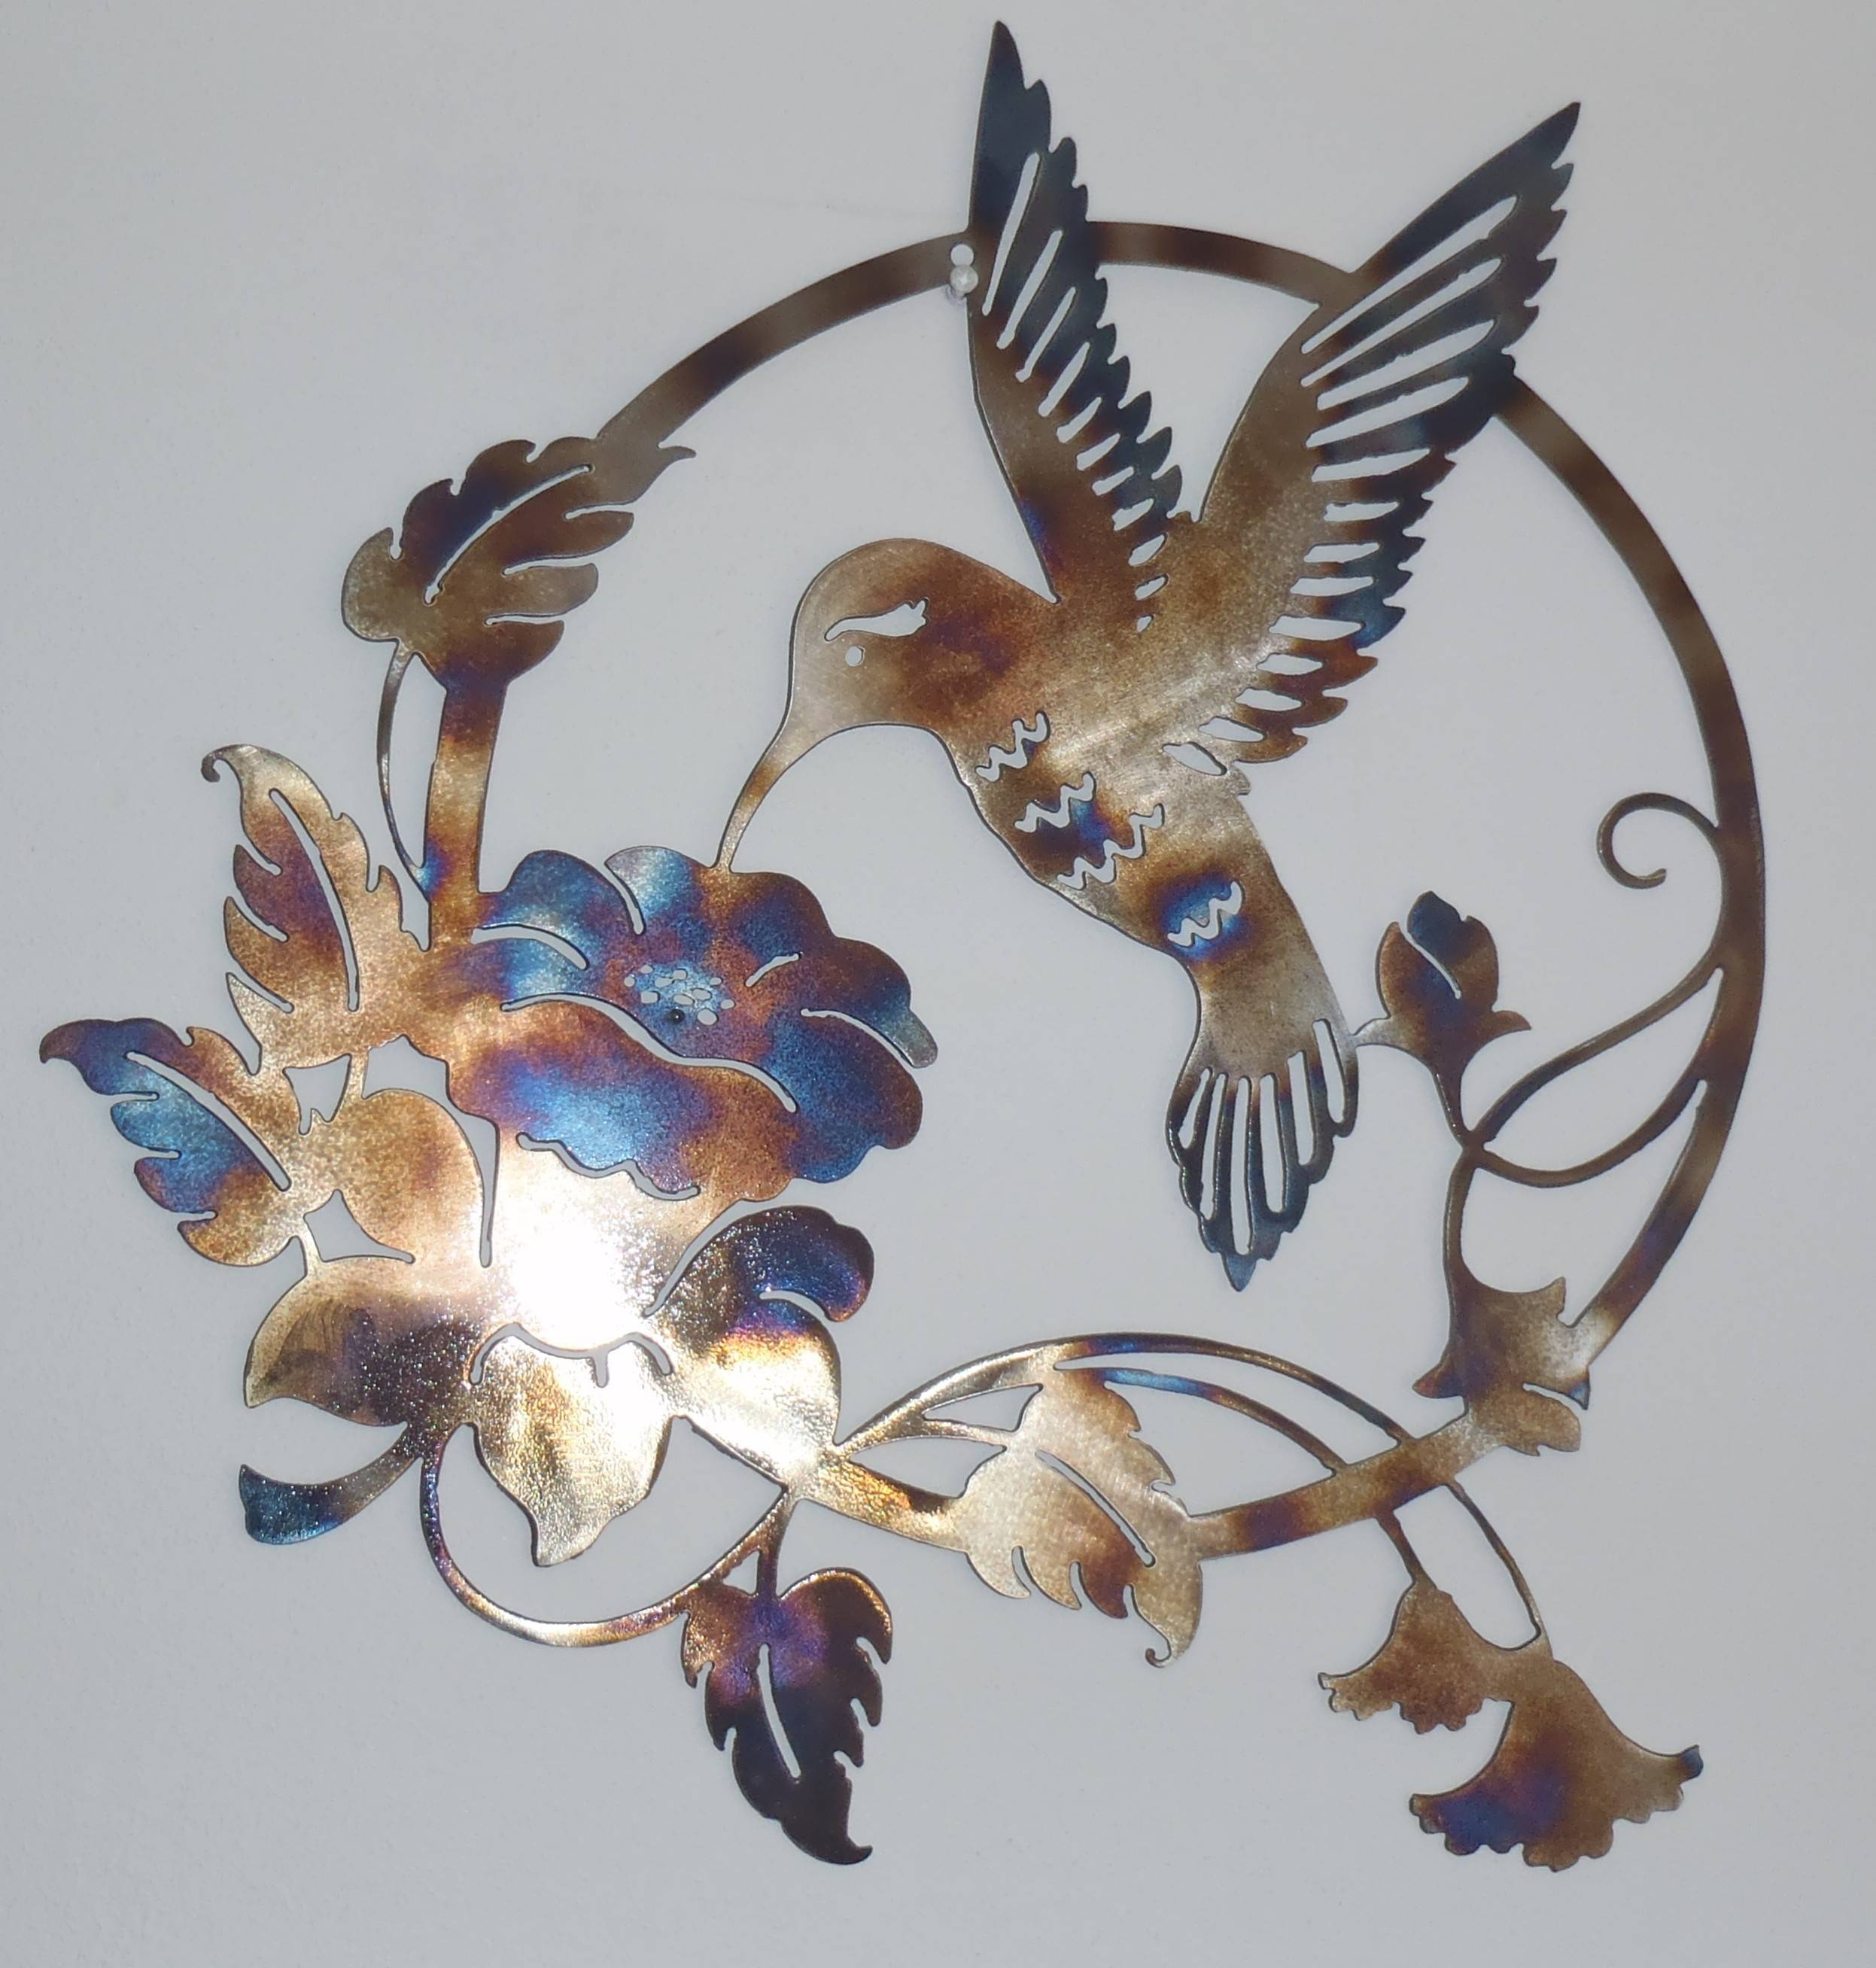 Hummingbird Decor | Iron Blog Inside Most Up To Date Flower Metal Wall Art Decor (Gallery 17 of 20)